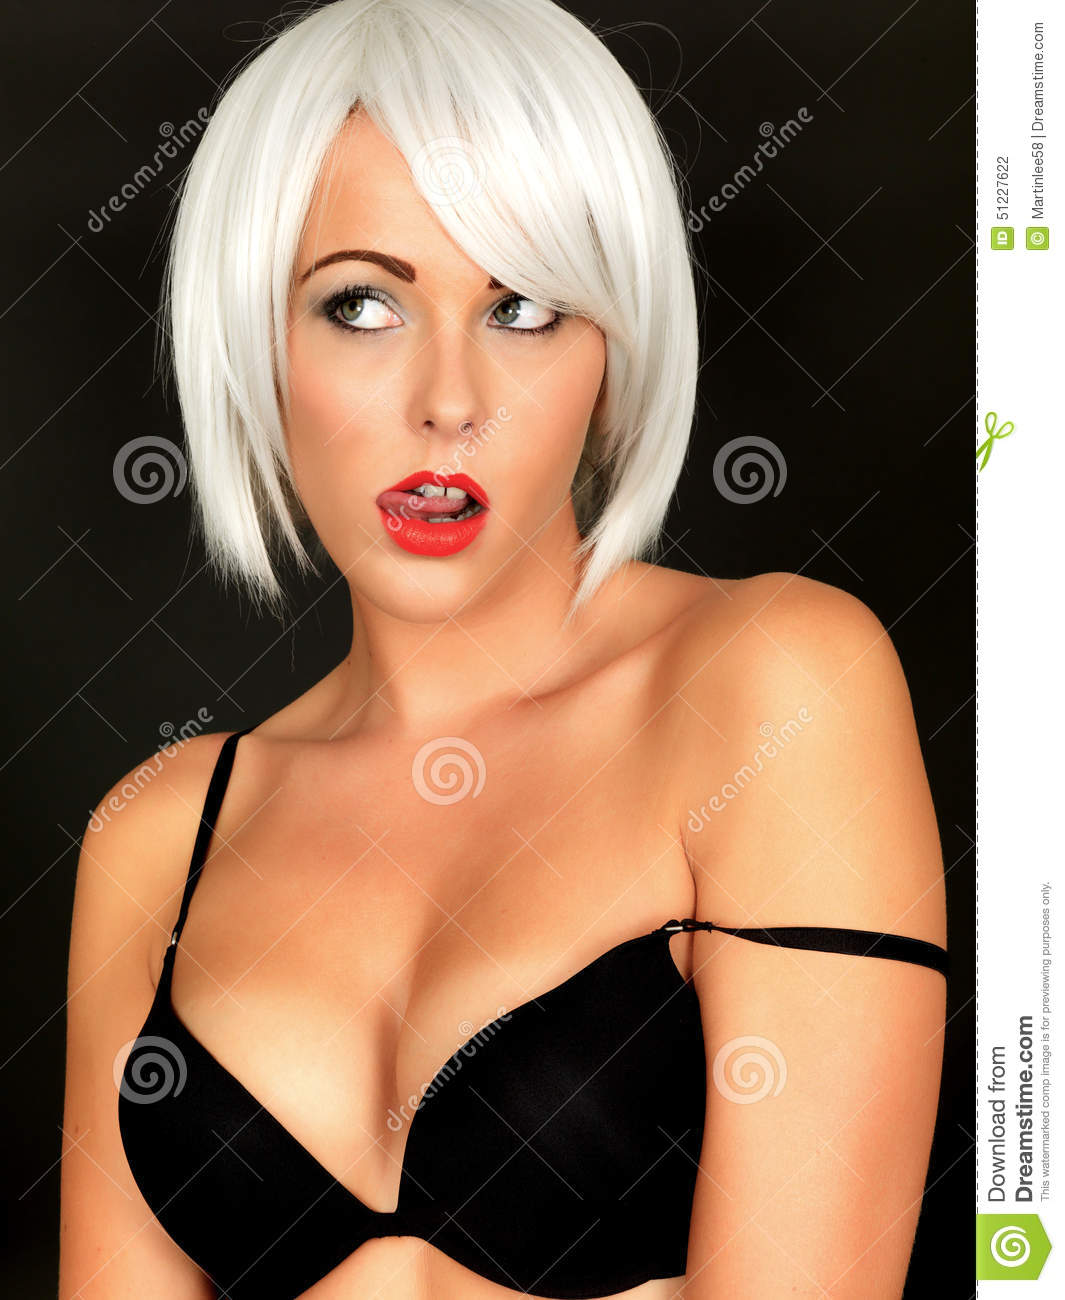 76cc822546d75 Young Woman Wearing Black Bra Licking Lip Stock Photo - Image of ...